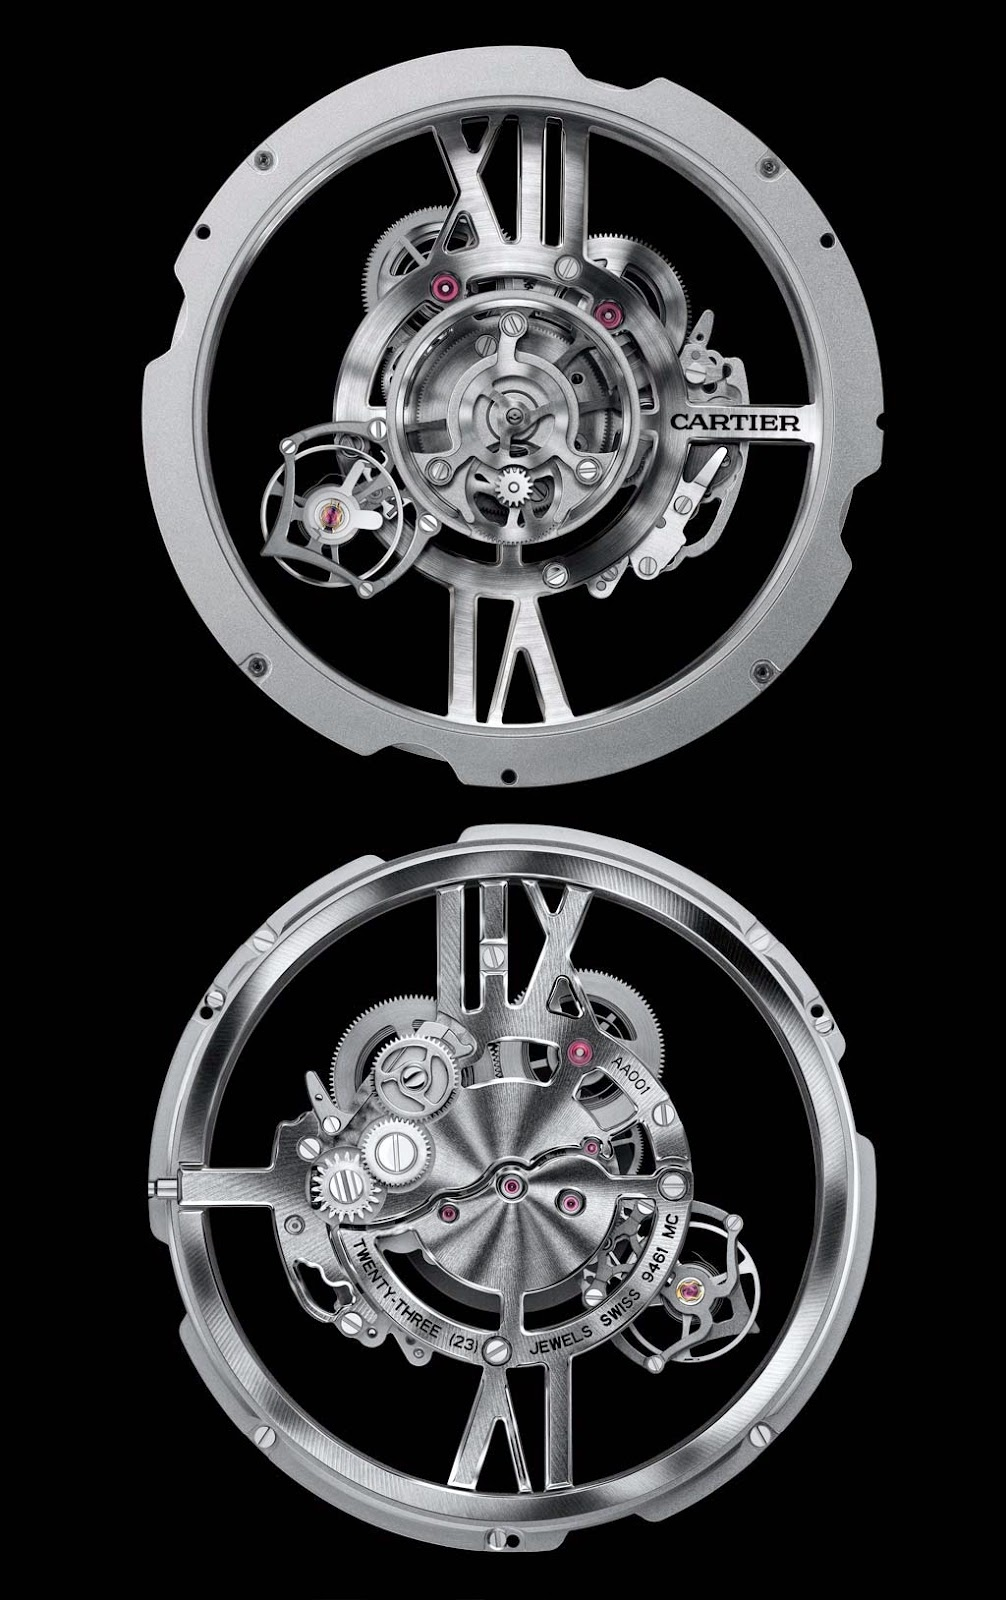 Cartier Rotonde Astrotourbillon Skeleton  Cartier-Astrotourbillon-6